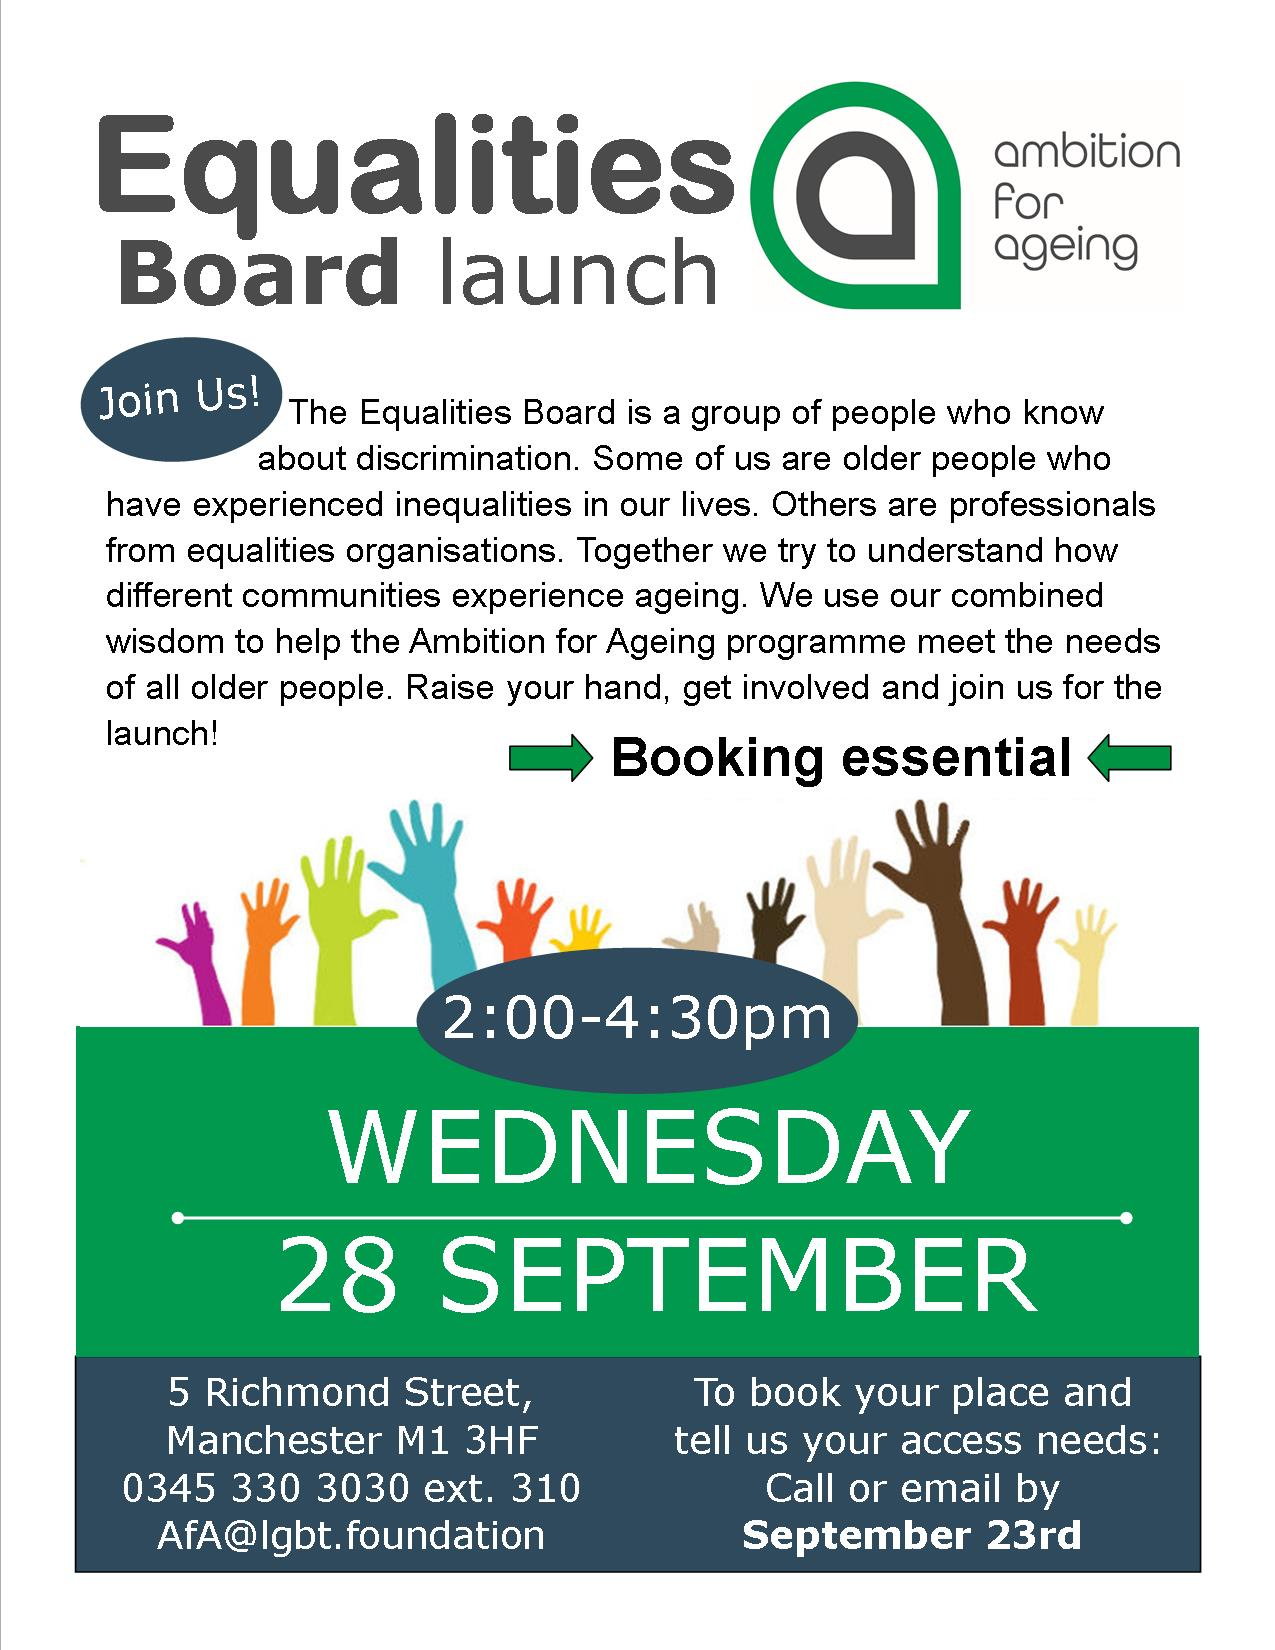 flyer announcing launch of the Equalities Board with image of different coloured hands reaching and text describing the Equalities Board and meeting date in September 2016